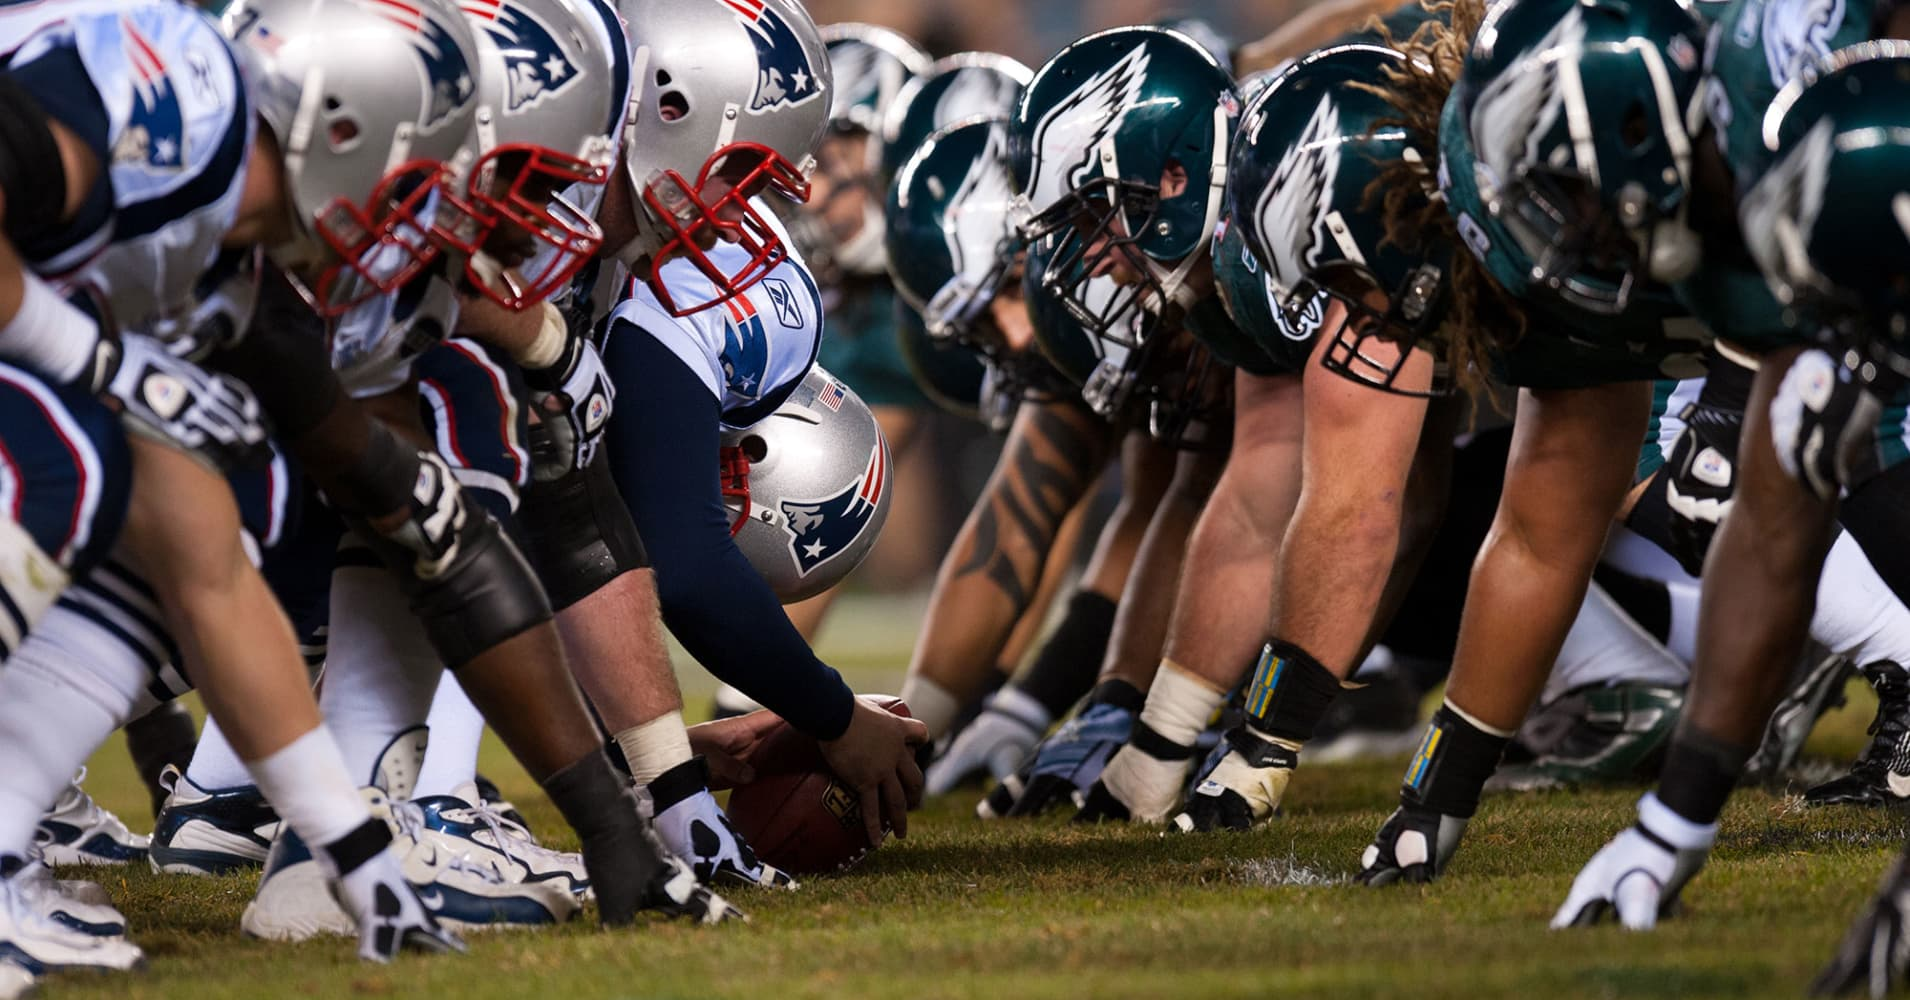 The Patriots And Eagles Will Square Off In Super Bowl 52